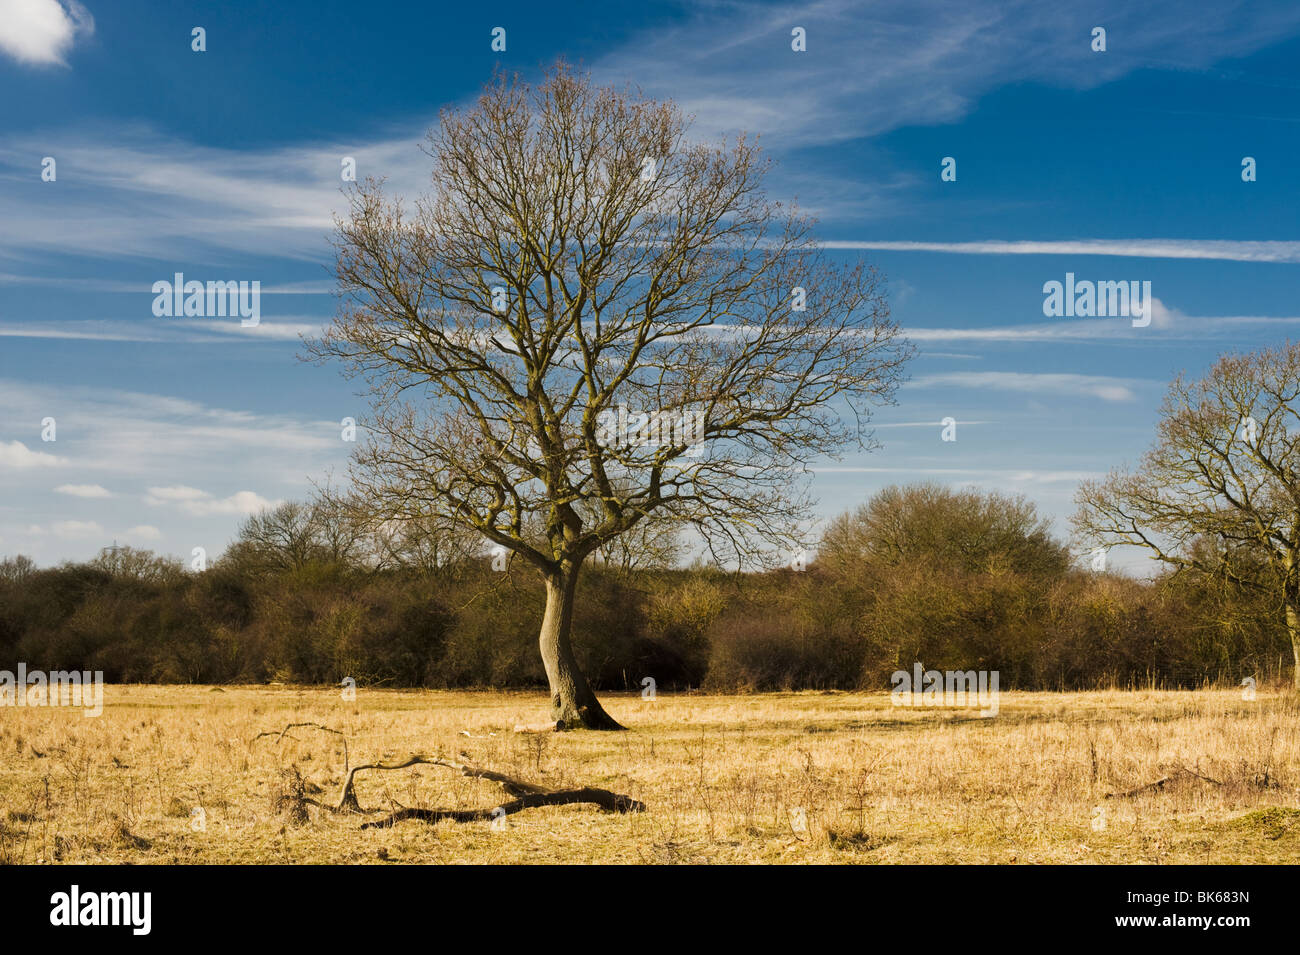 Leafless oak tree at Castor Hanglands National Nature Reserve, Cambridgeshire, in early March - Stock Image